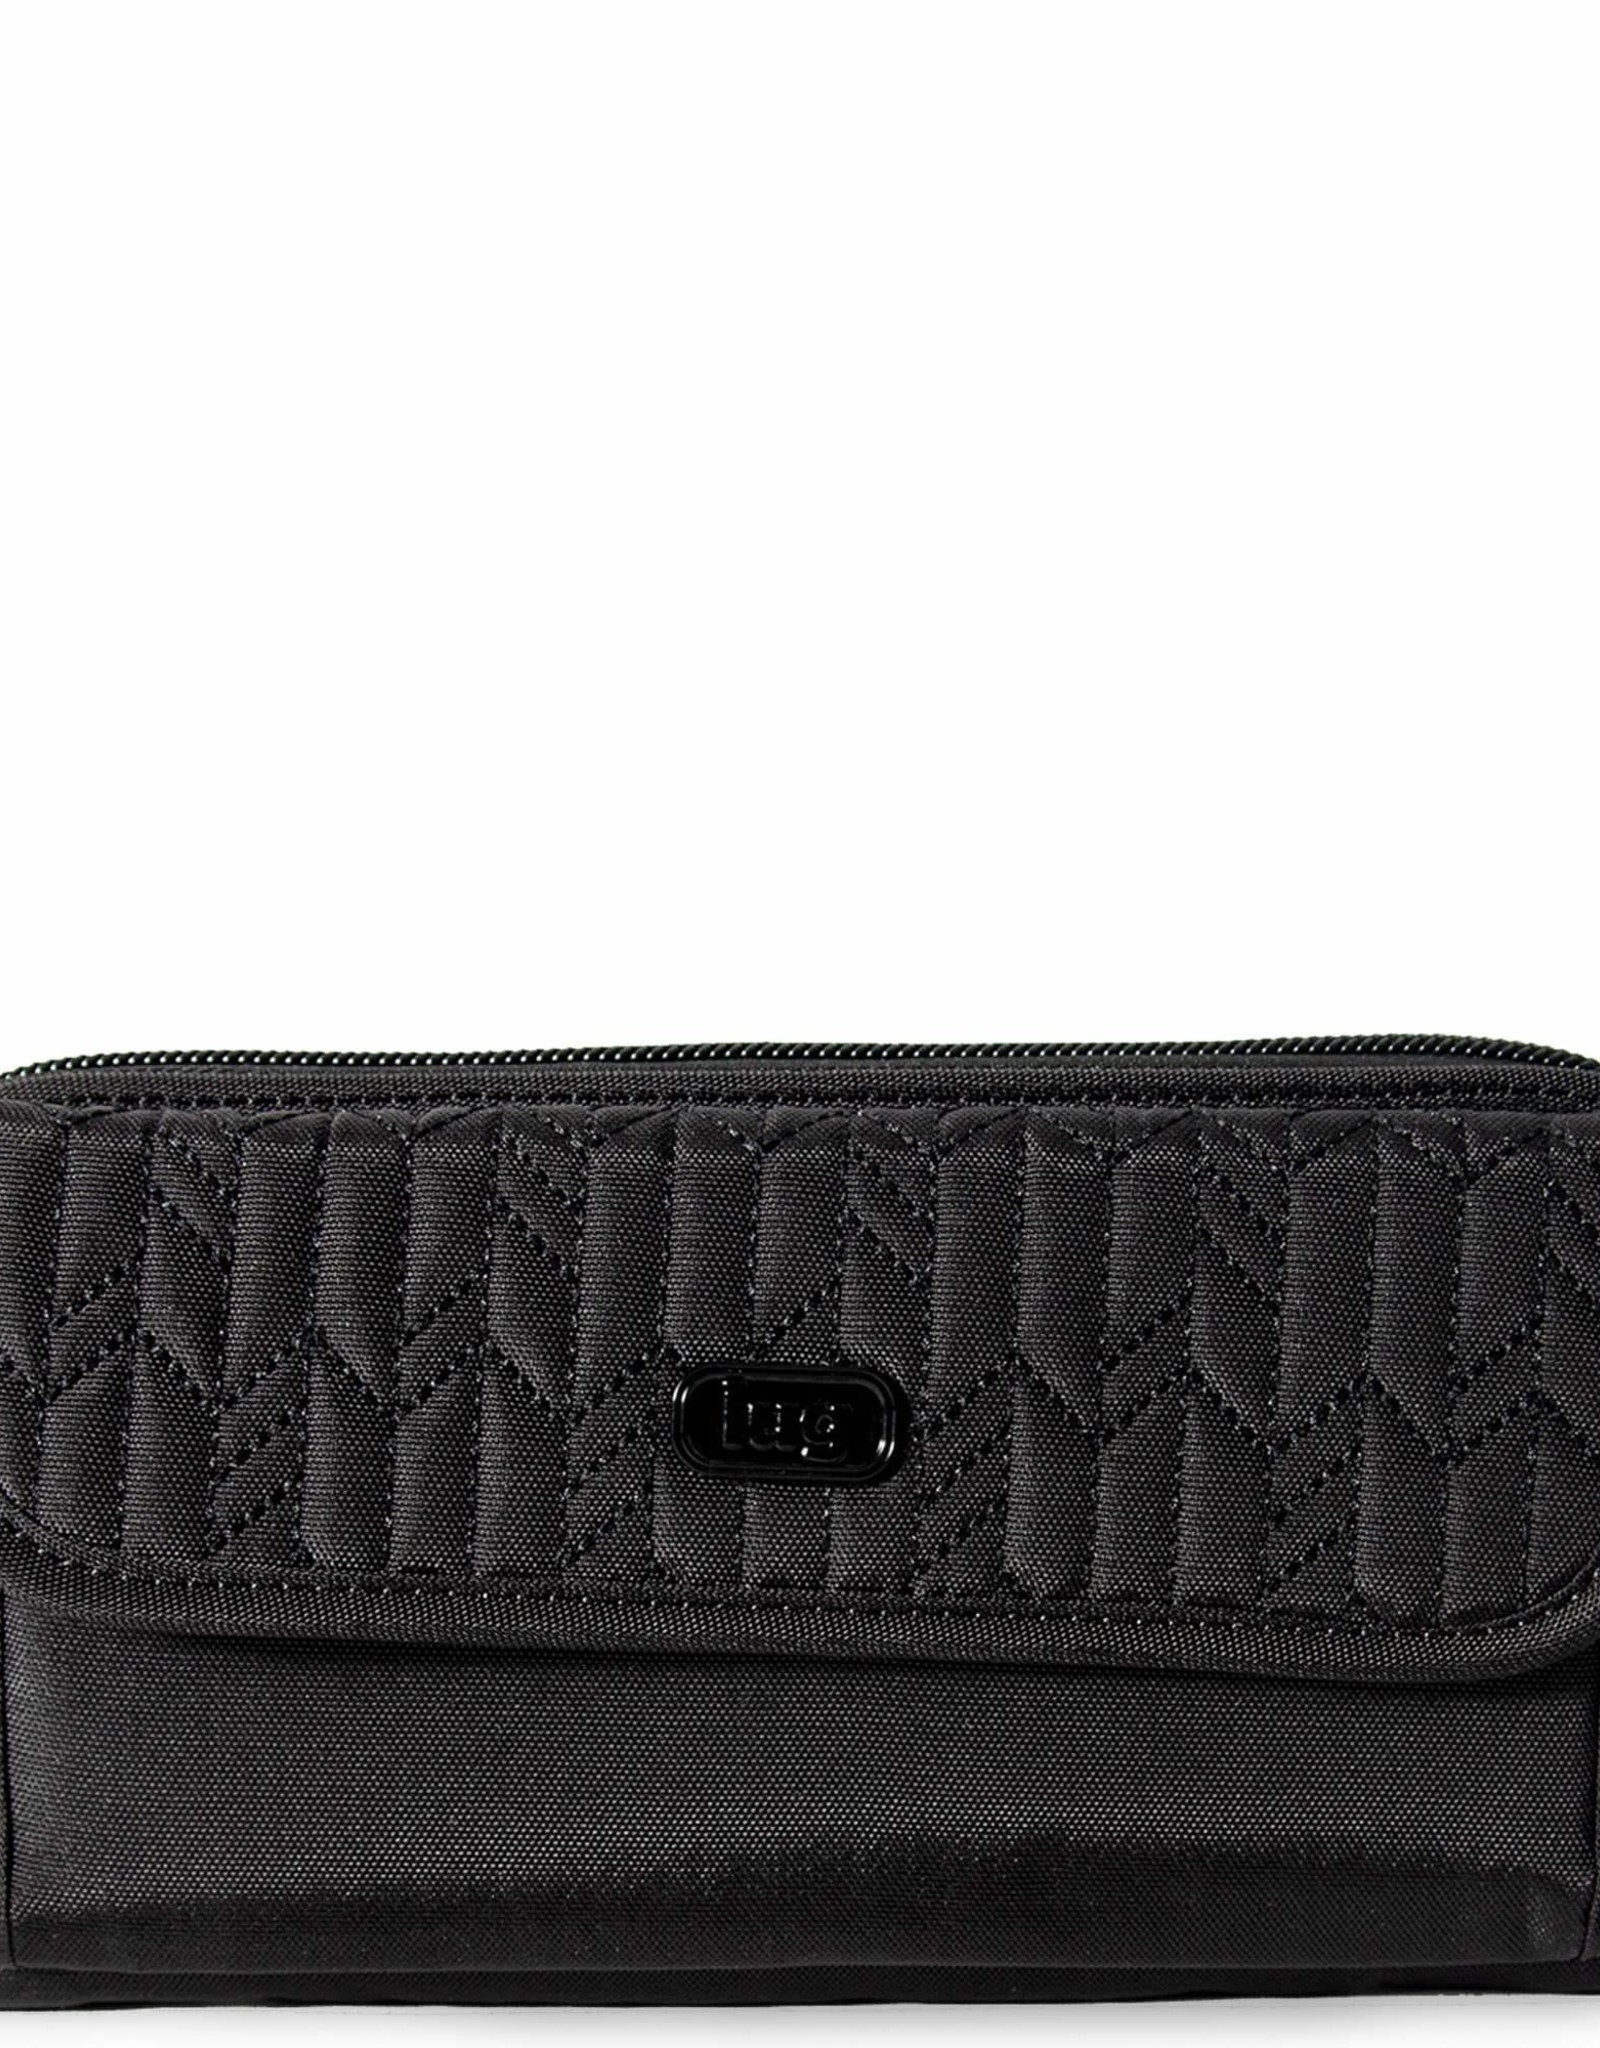 Lug Kick Flip Wallet - Black